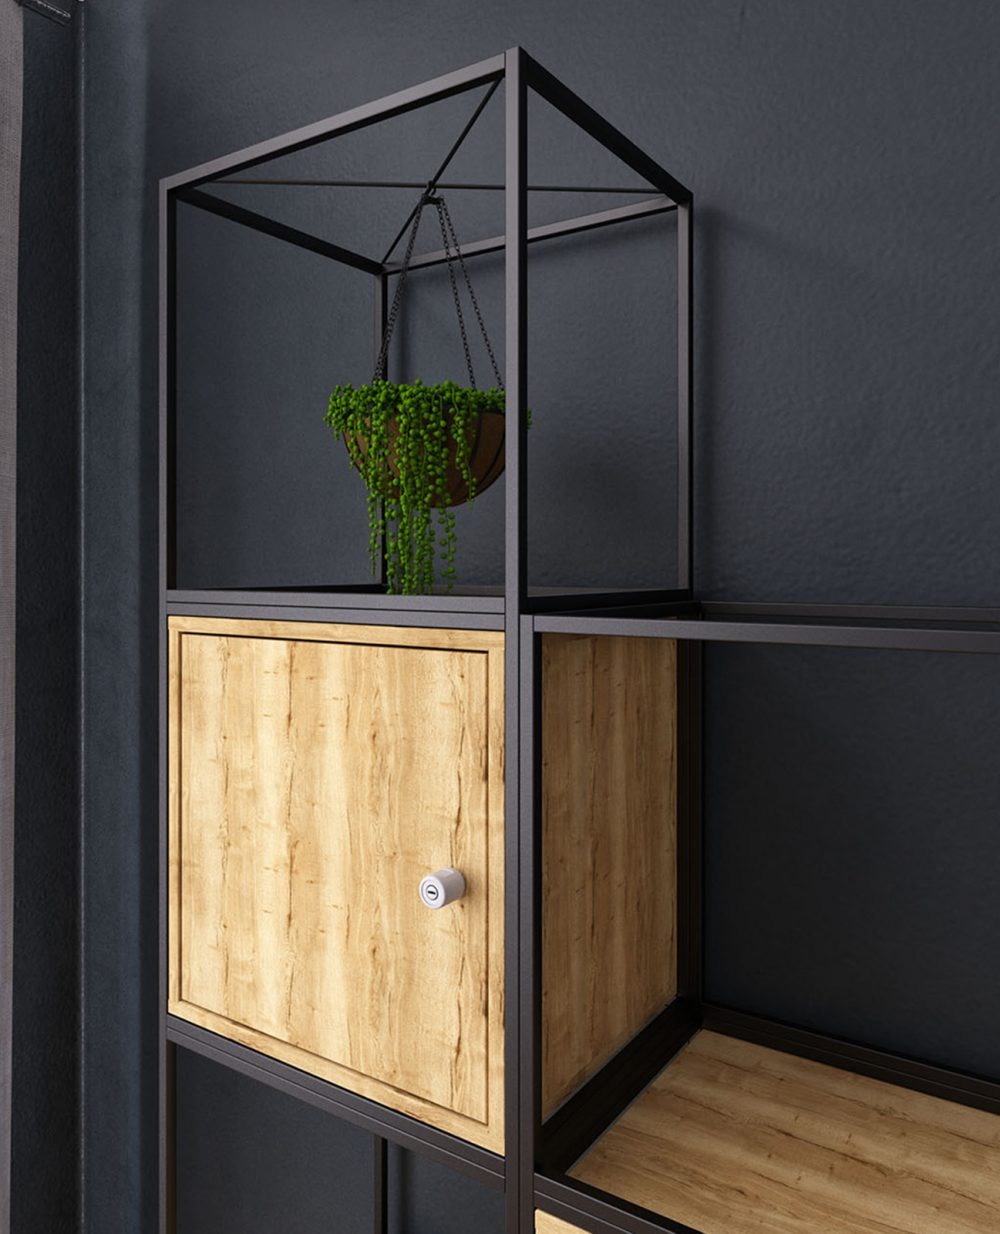 halifax oak, locker, storage, pull handle, plant hanger, black metalwork